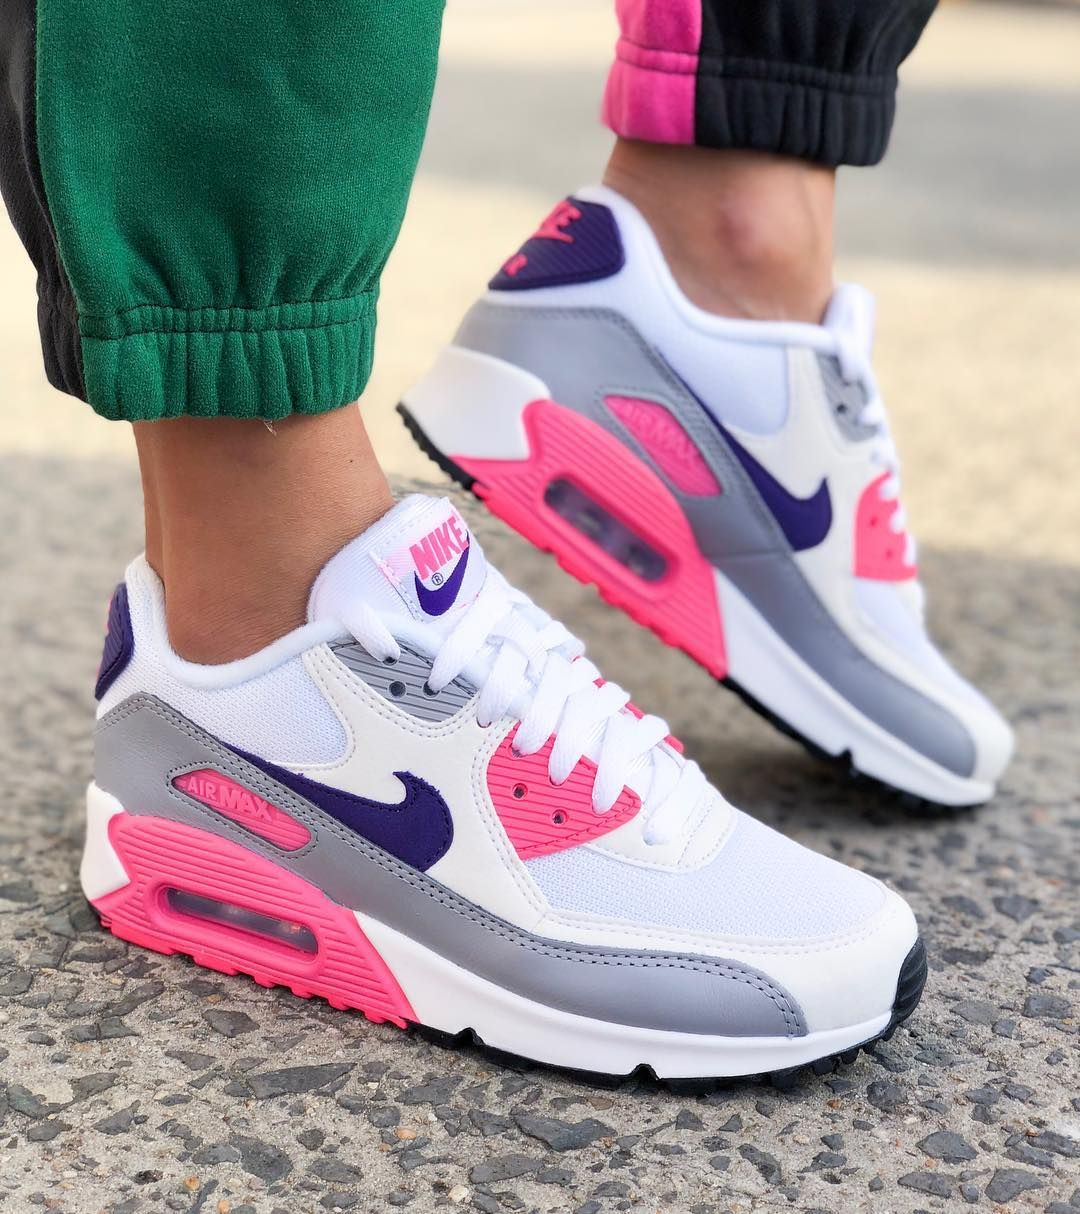 Nike Air Max 90 White Purple Grey Pink | Shoes in 2019